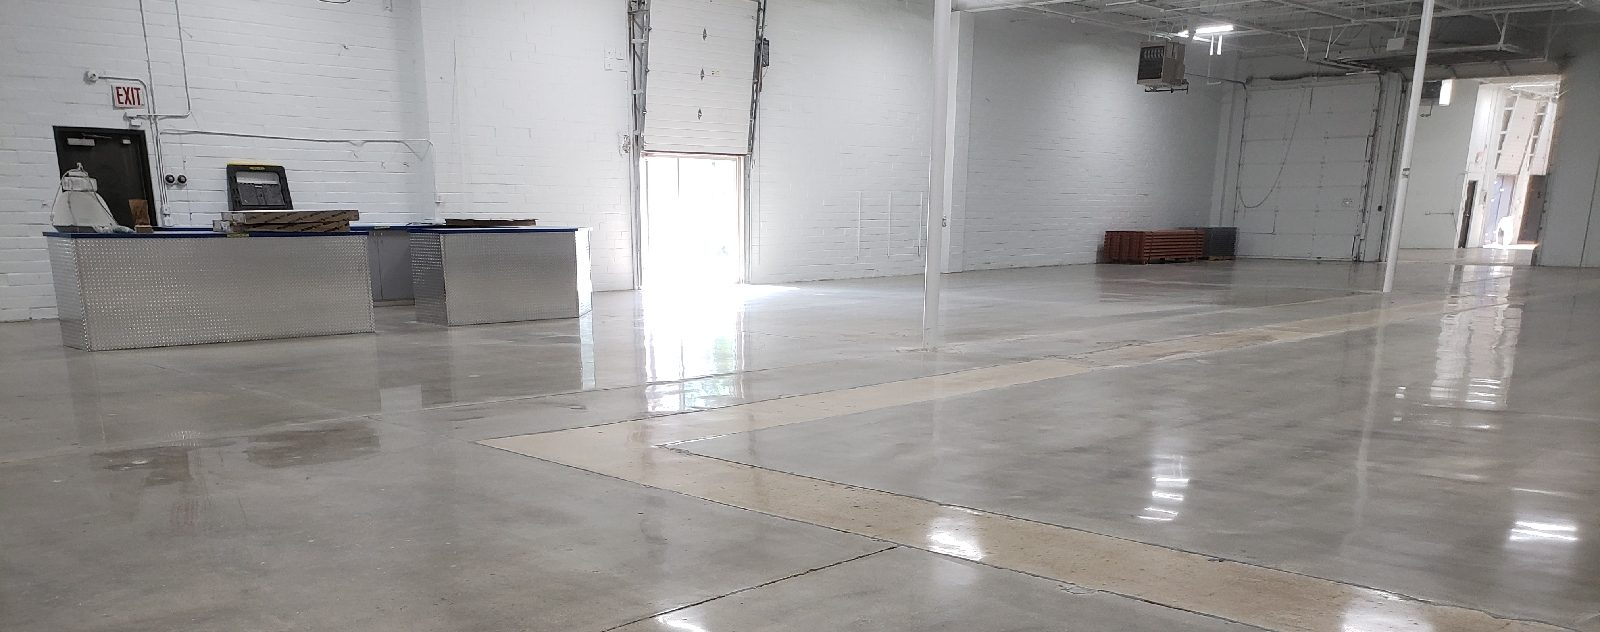 View Larger Image Mechanically Polished Concrete Floor